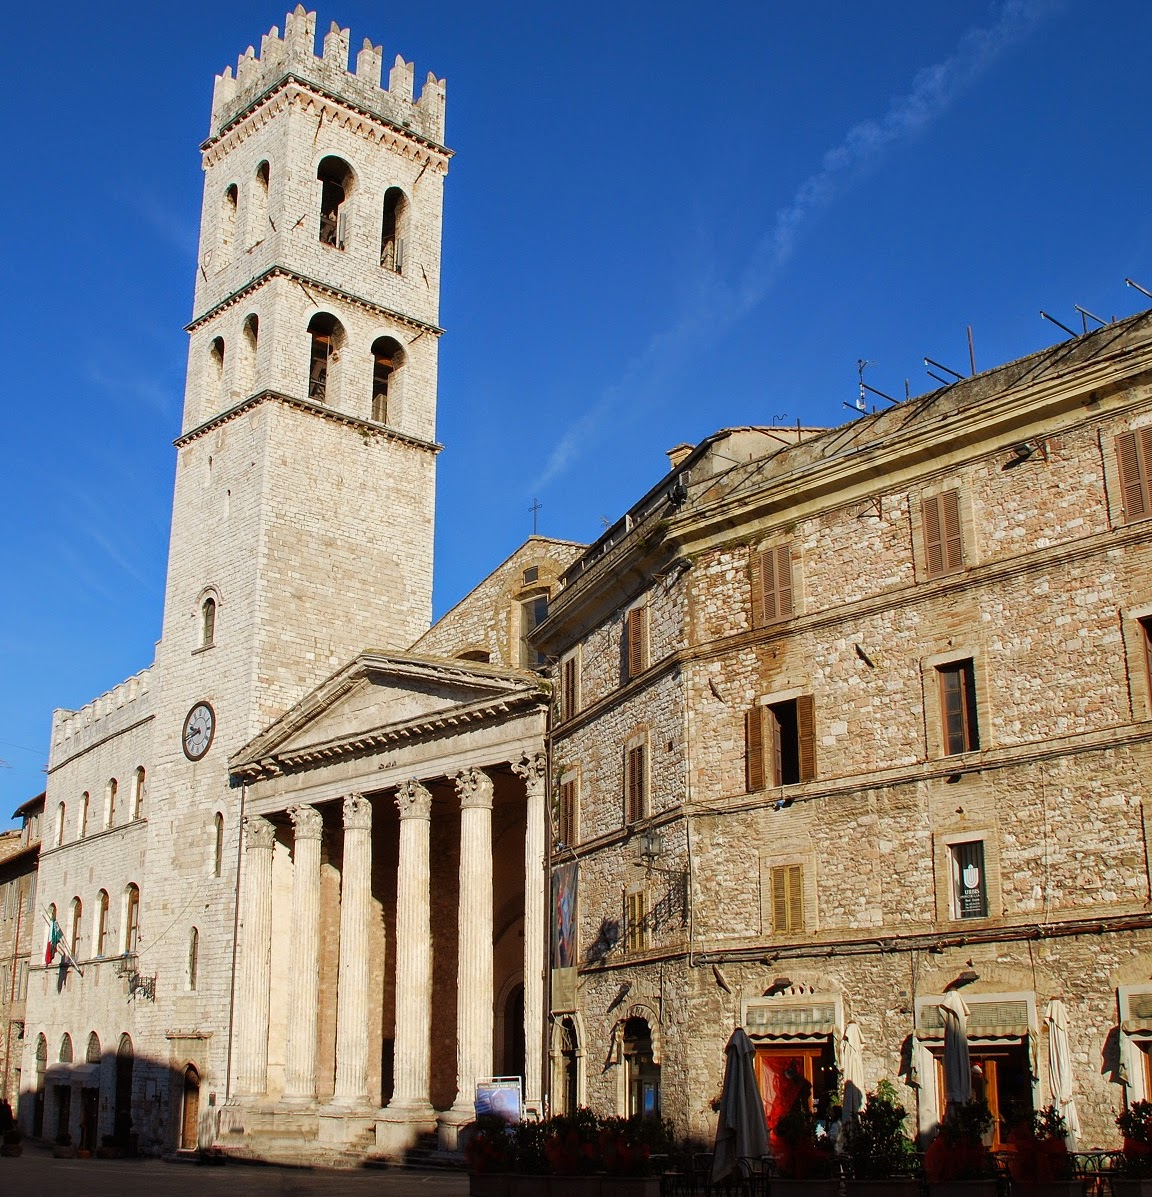 TheTemple of Minerva in the city of Assisi